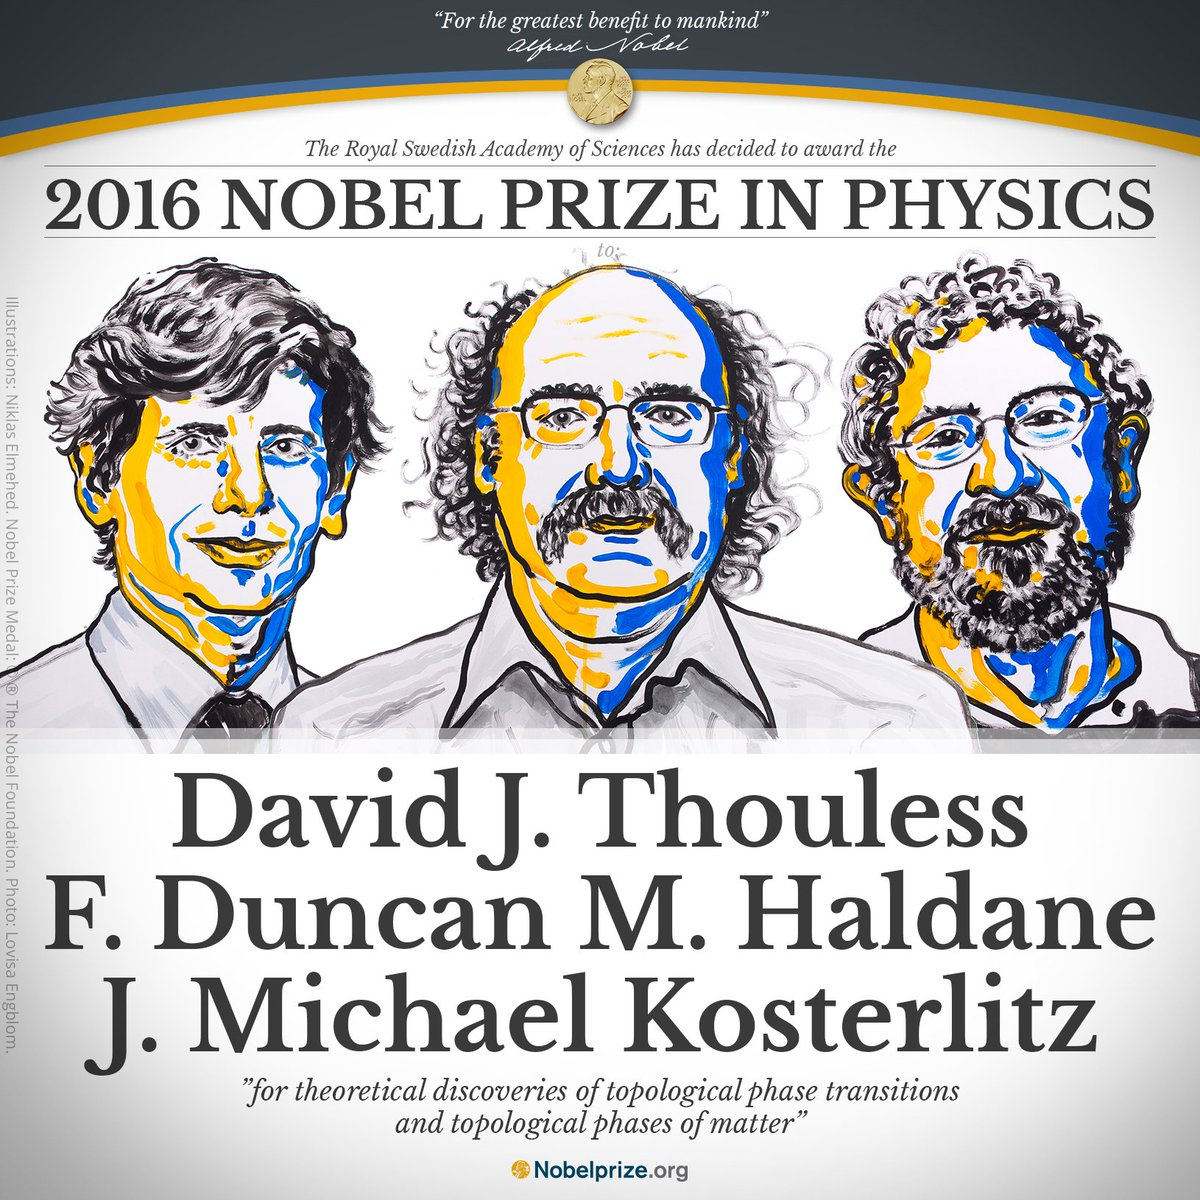 https://www.theguardian.com/science/live/2016/oct/04/nobel-prize-in-physics-2016-to-be-announced-live